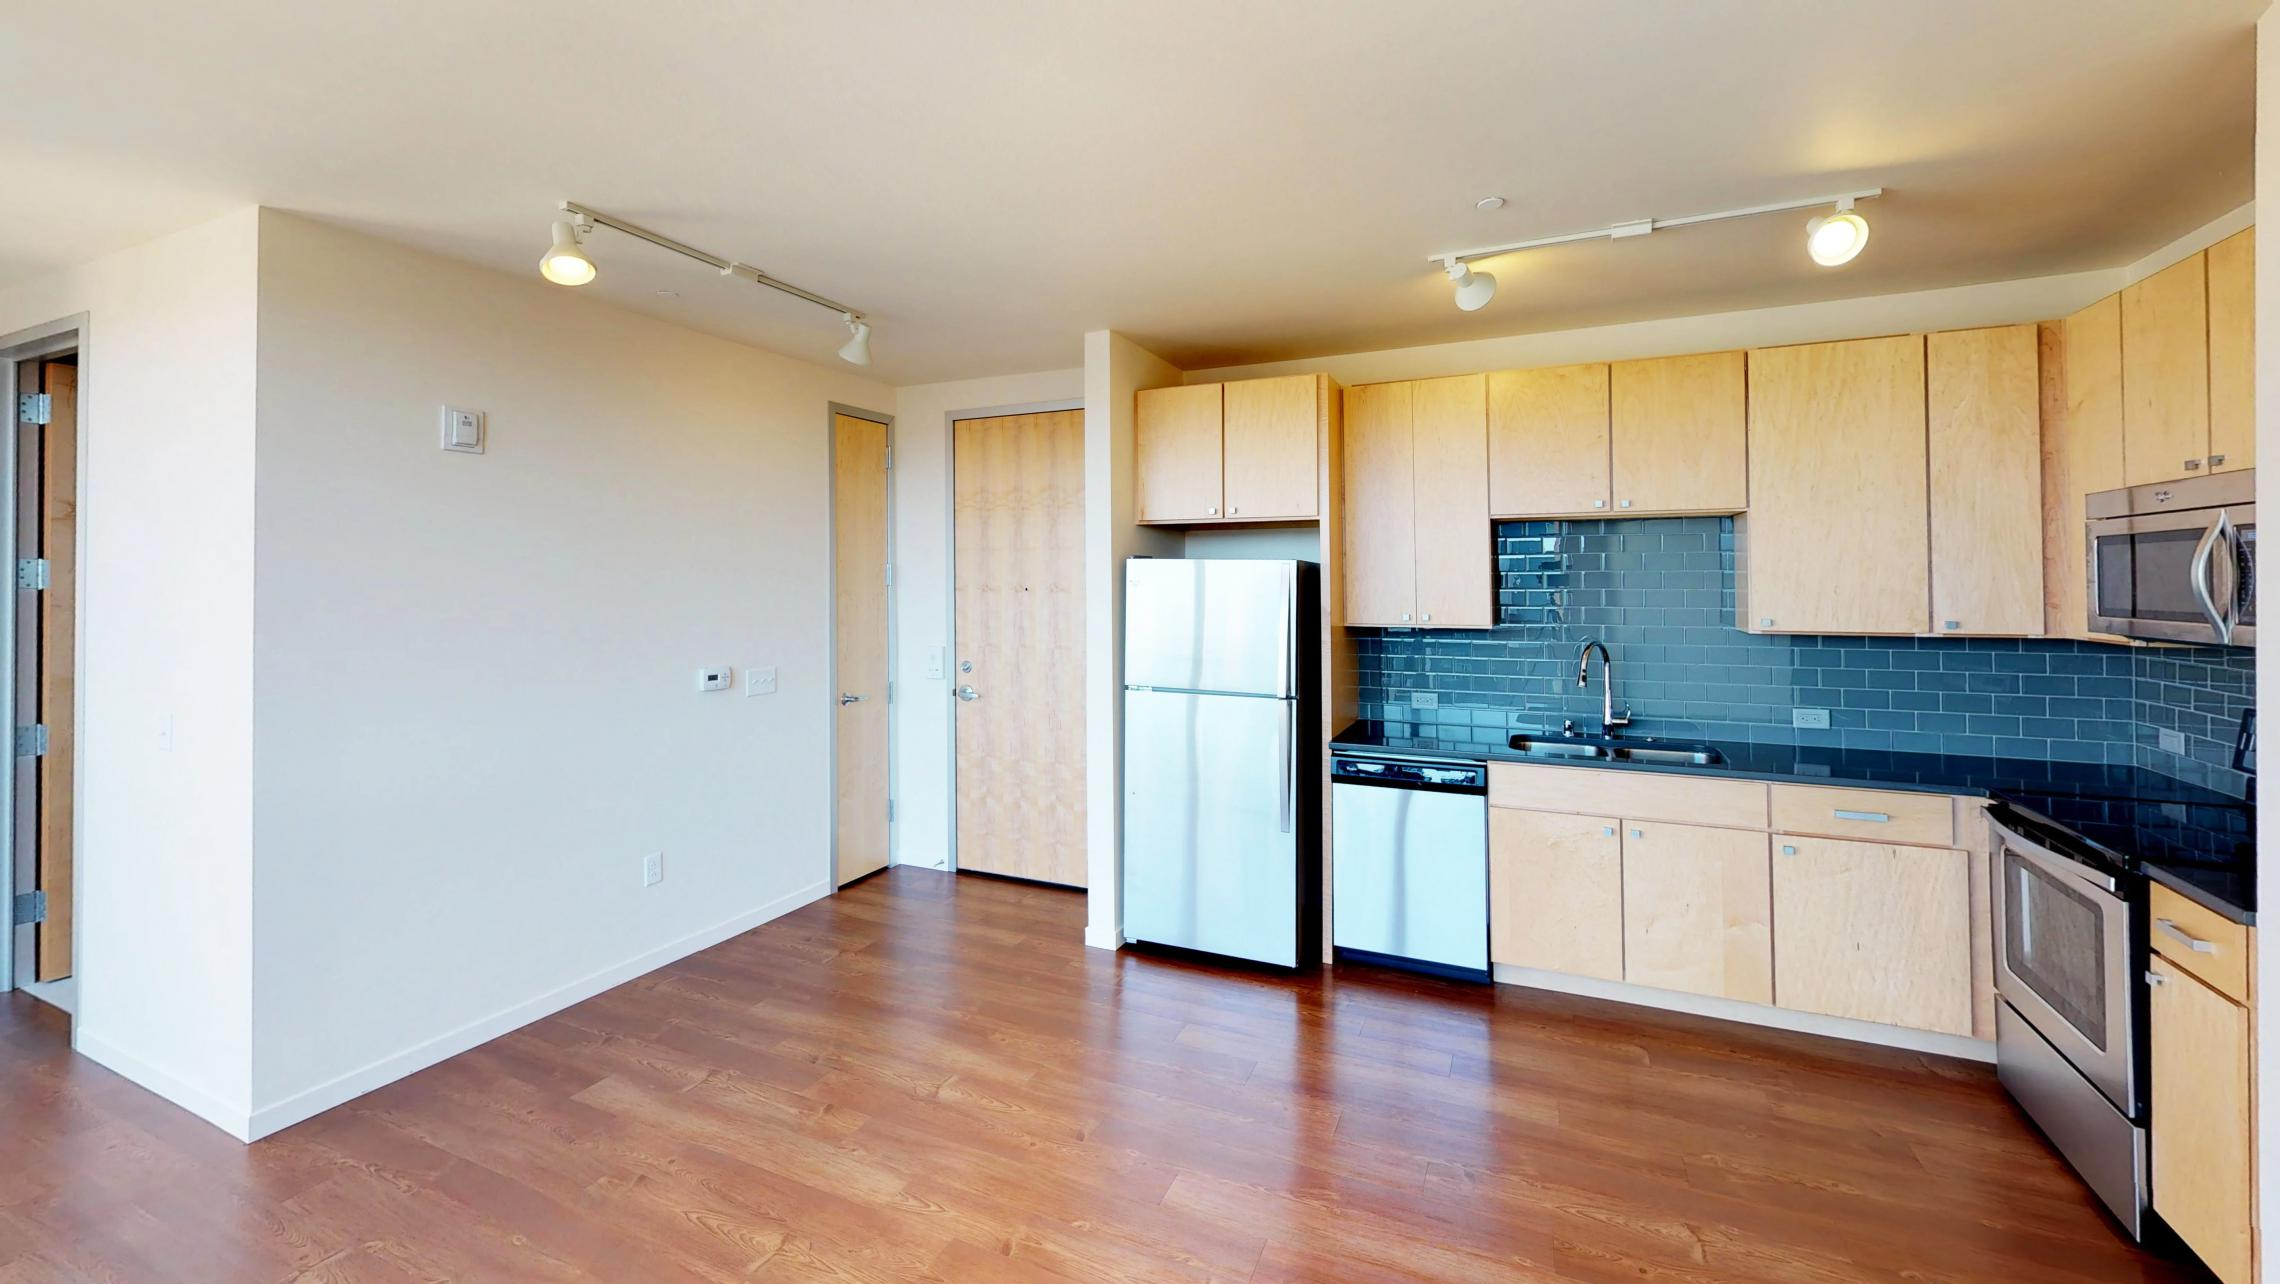 Nine-Line-Apartment-kitchen-upscale-modern-luxury-design-madison-lifestyle-balcony-downtown-capitol.jpg